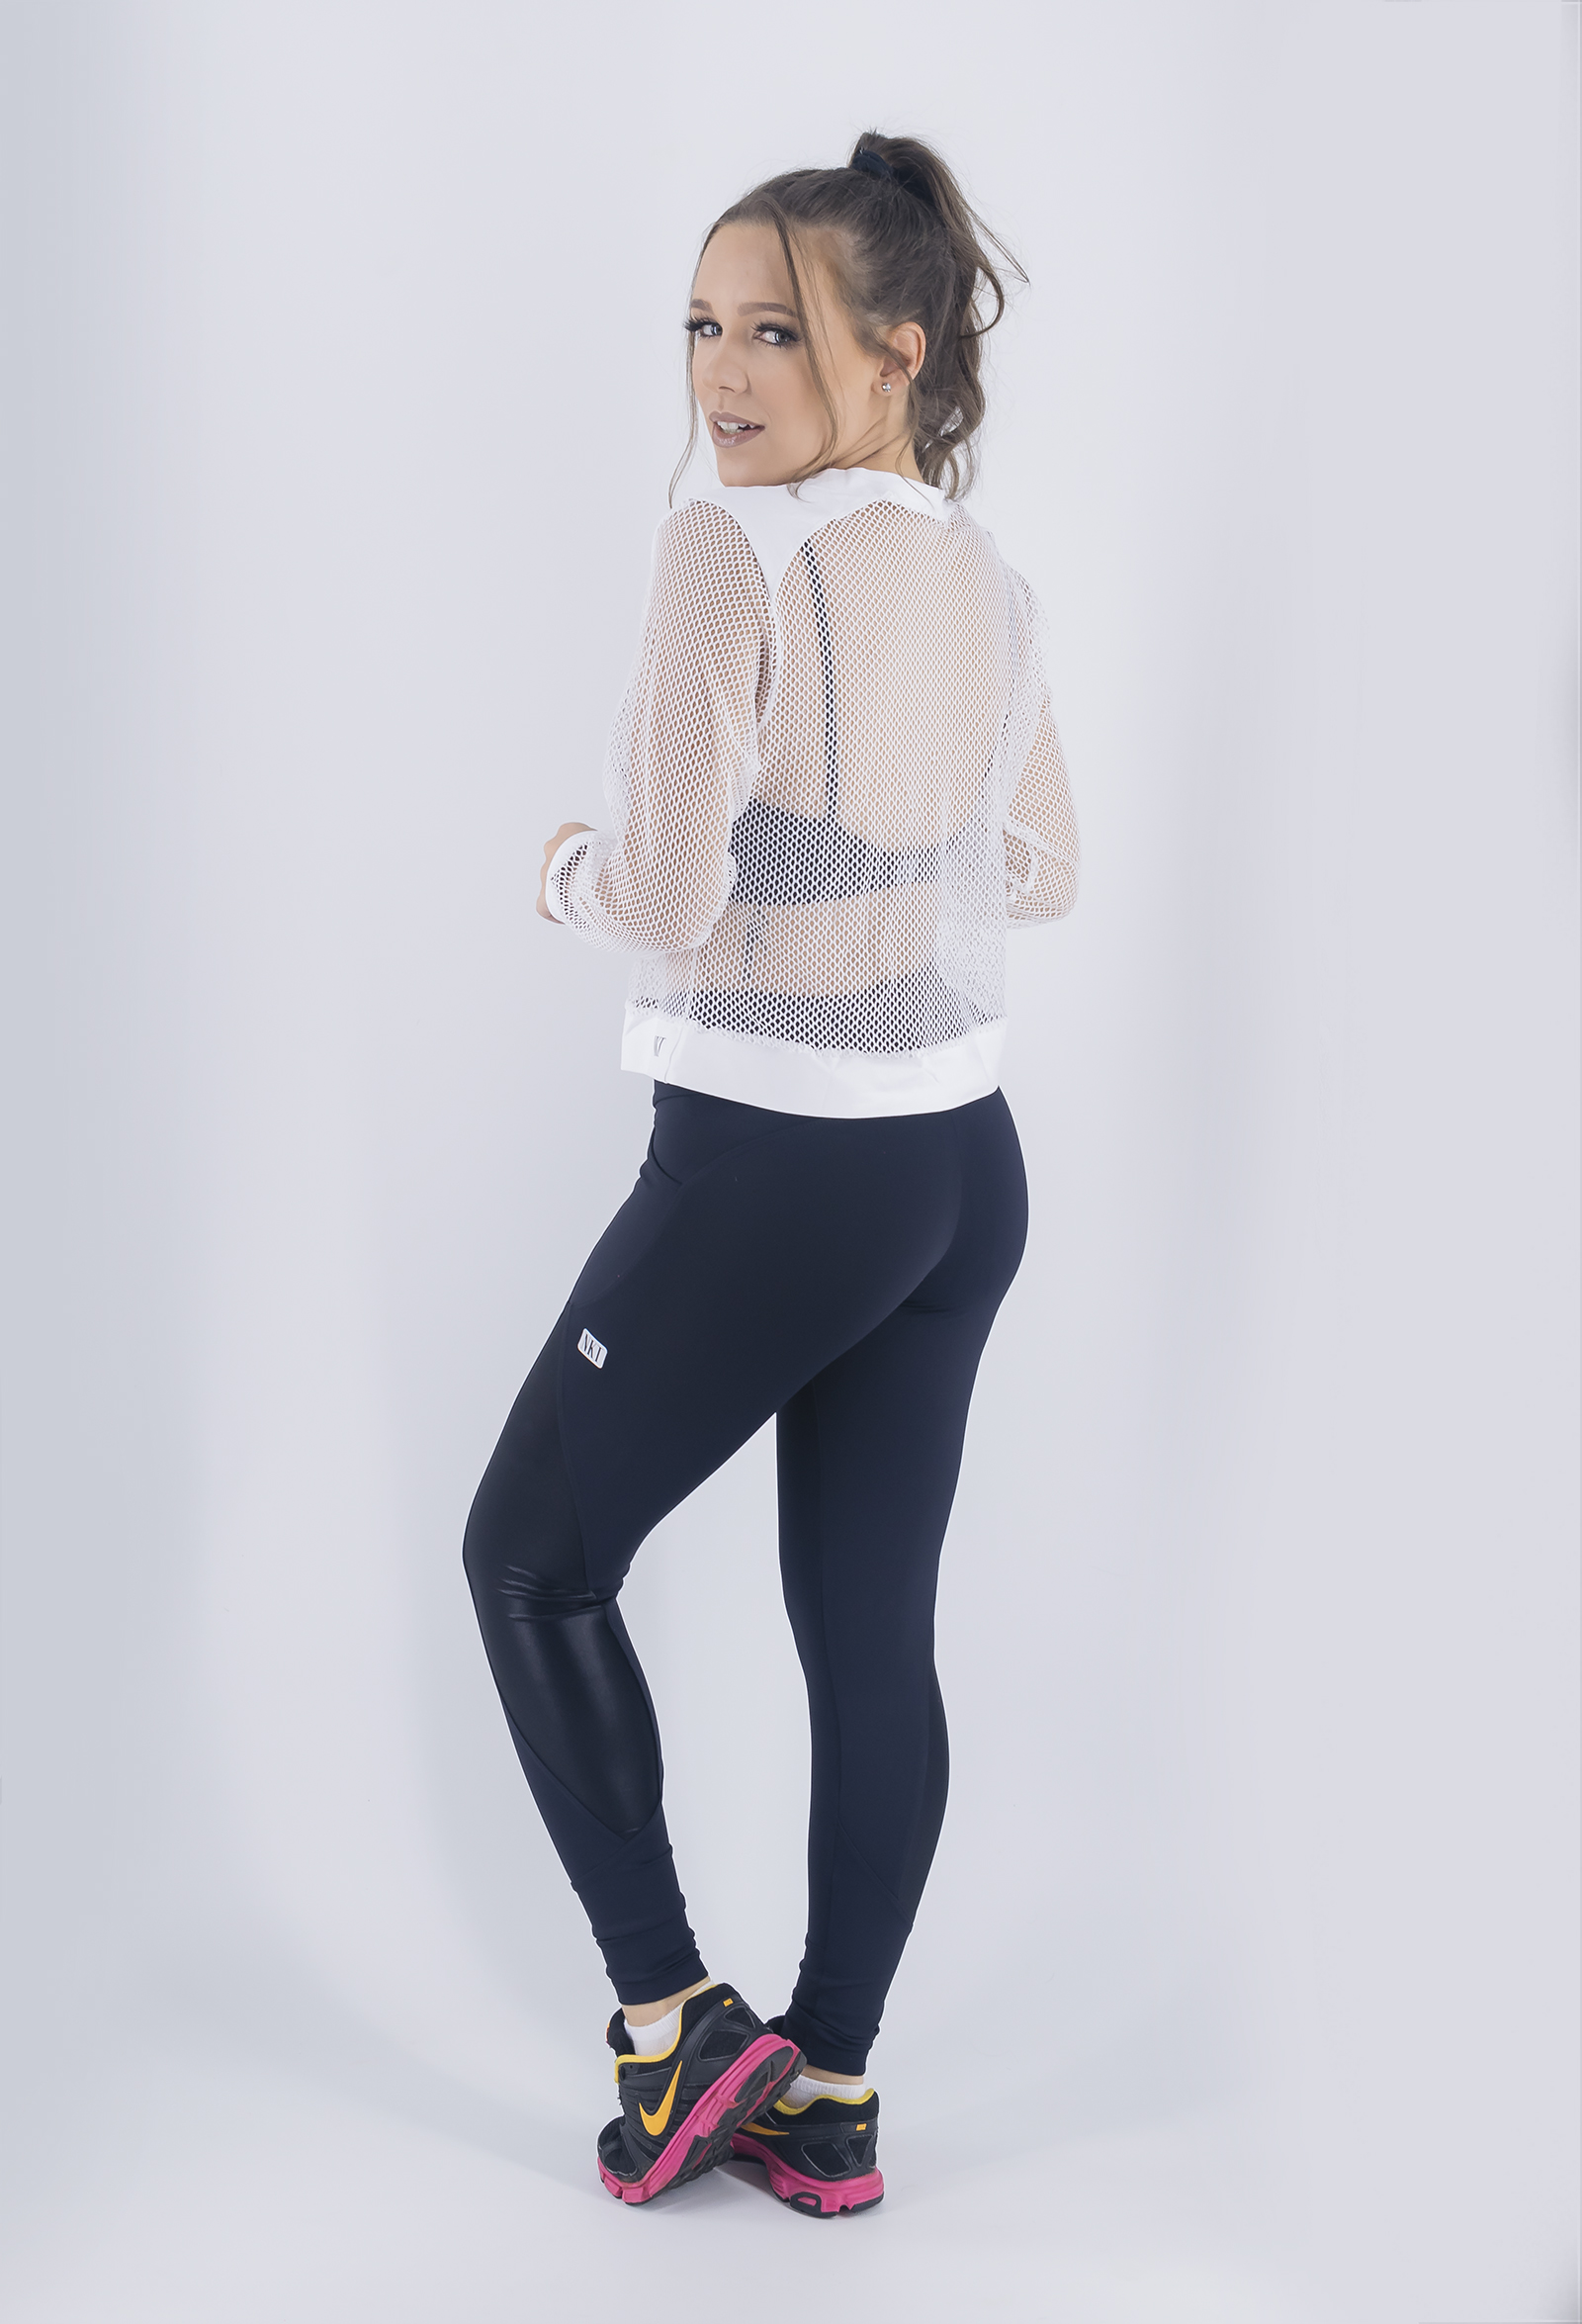 Manga Longa Join Branca, Coleção Just For You - NKT Fitwear Moda Fitness